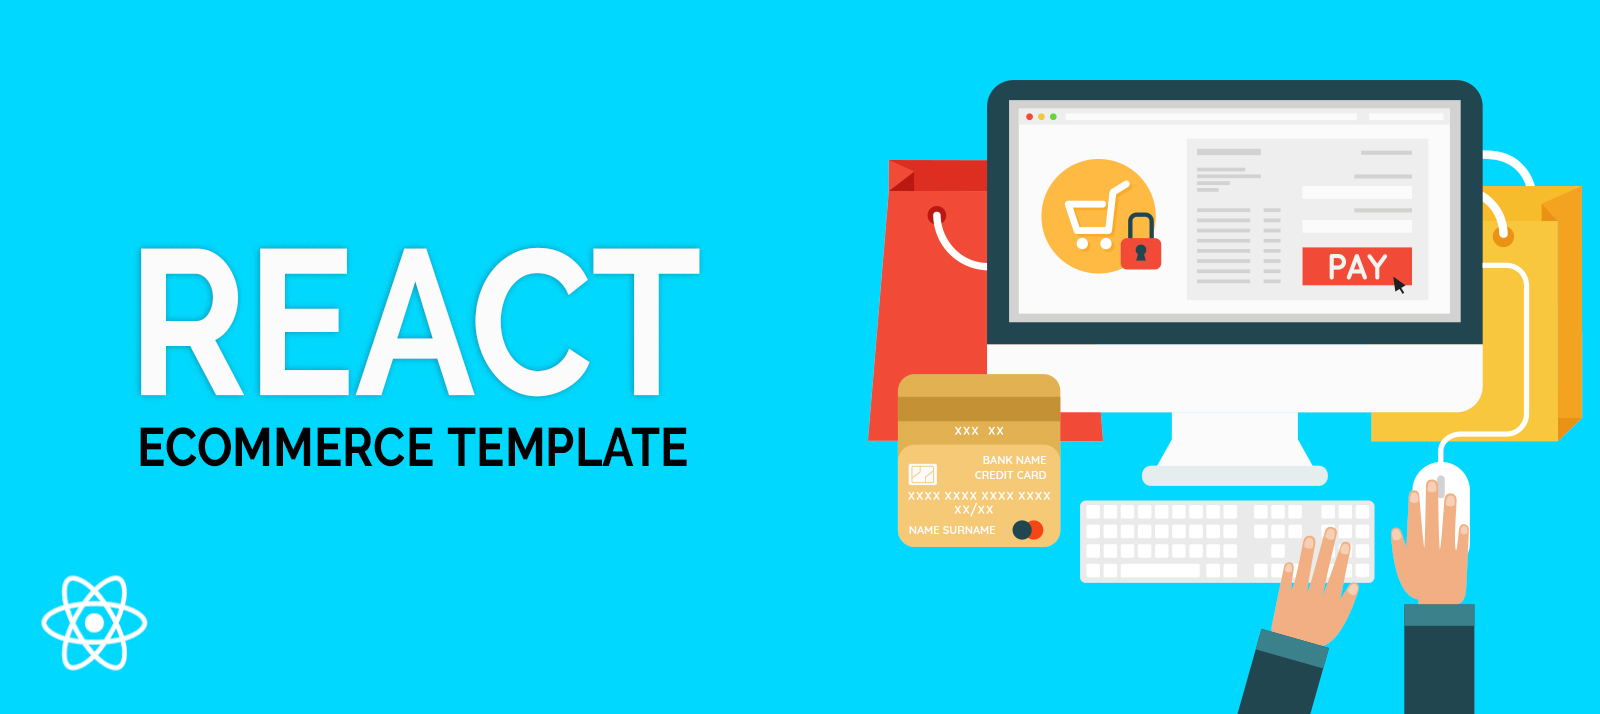 30+ Feature-Rich and Fully Responsive React Ecommerce Templates